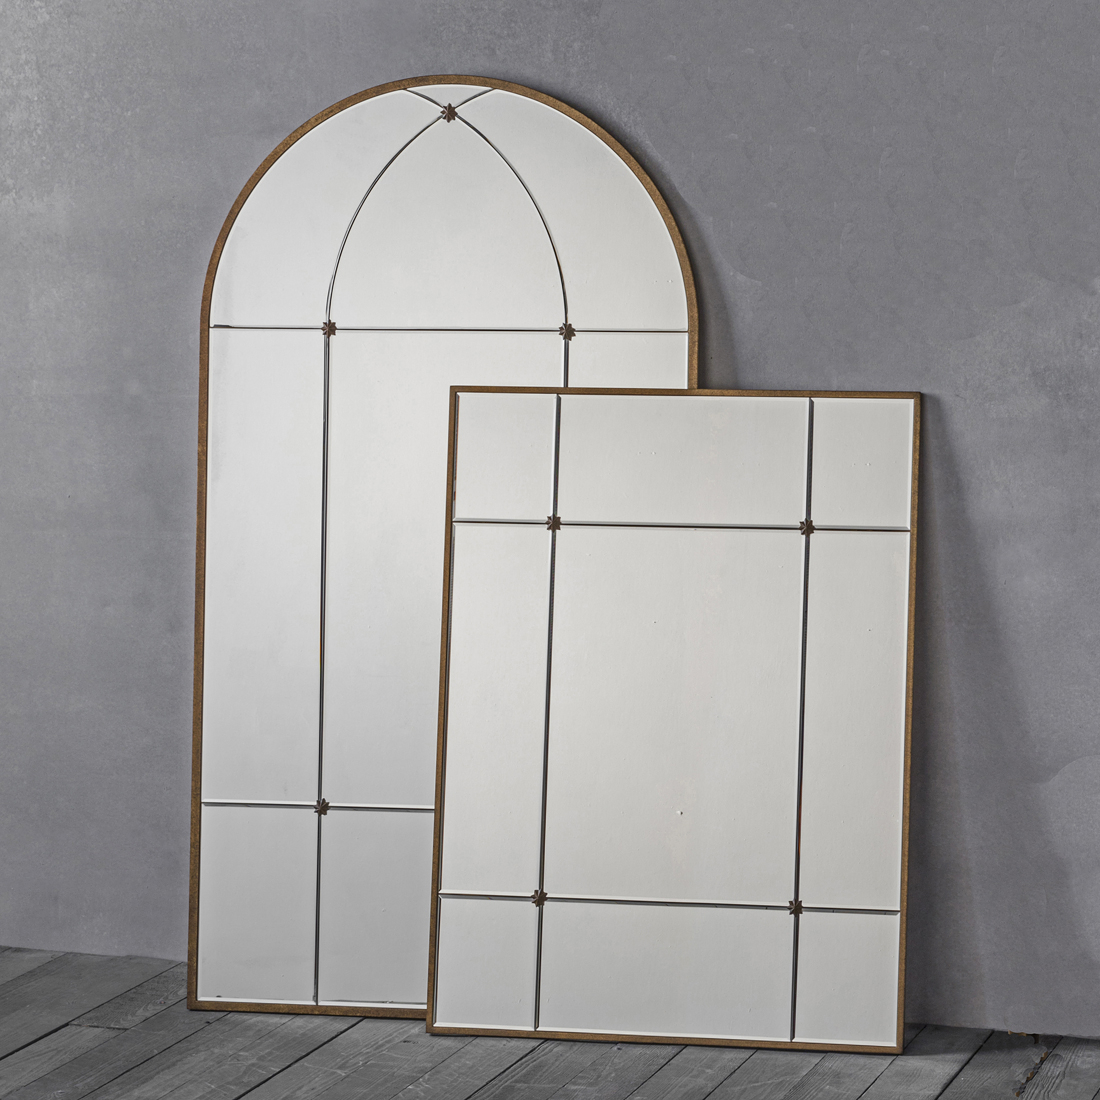 Gold Window Wall Mirror – Arch Or Rectangle Within Metal Arch Window Wall Mirrors (Image 9 of 20)